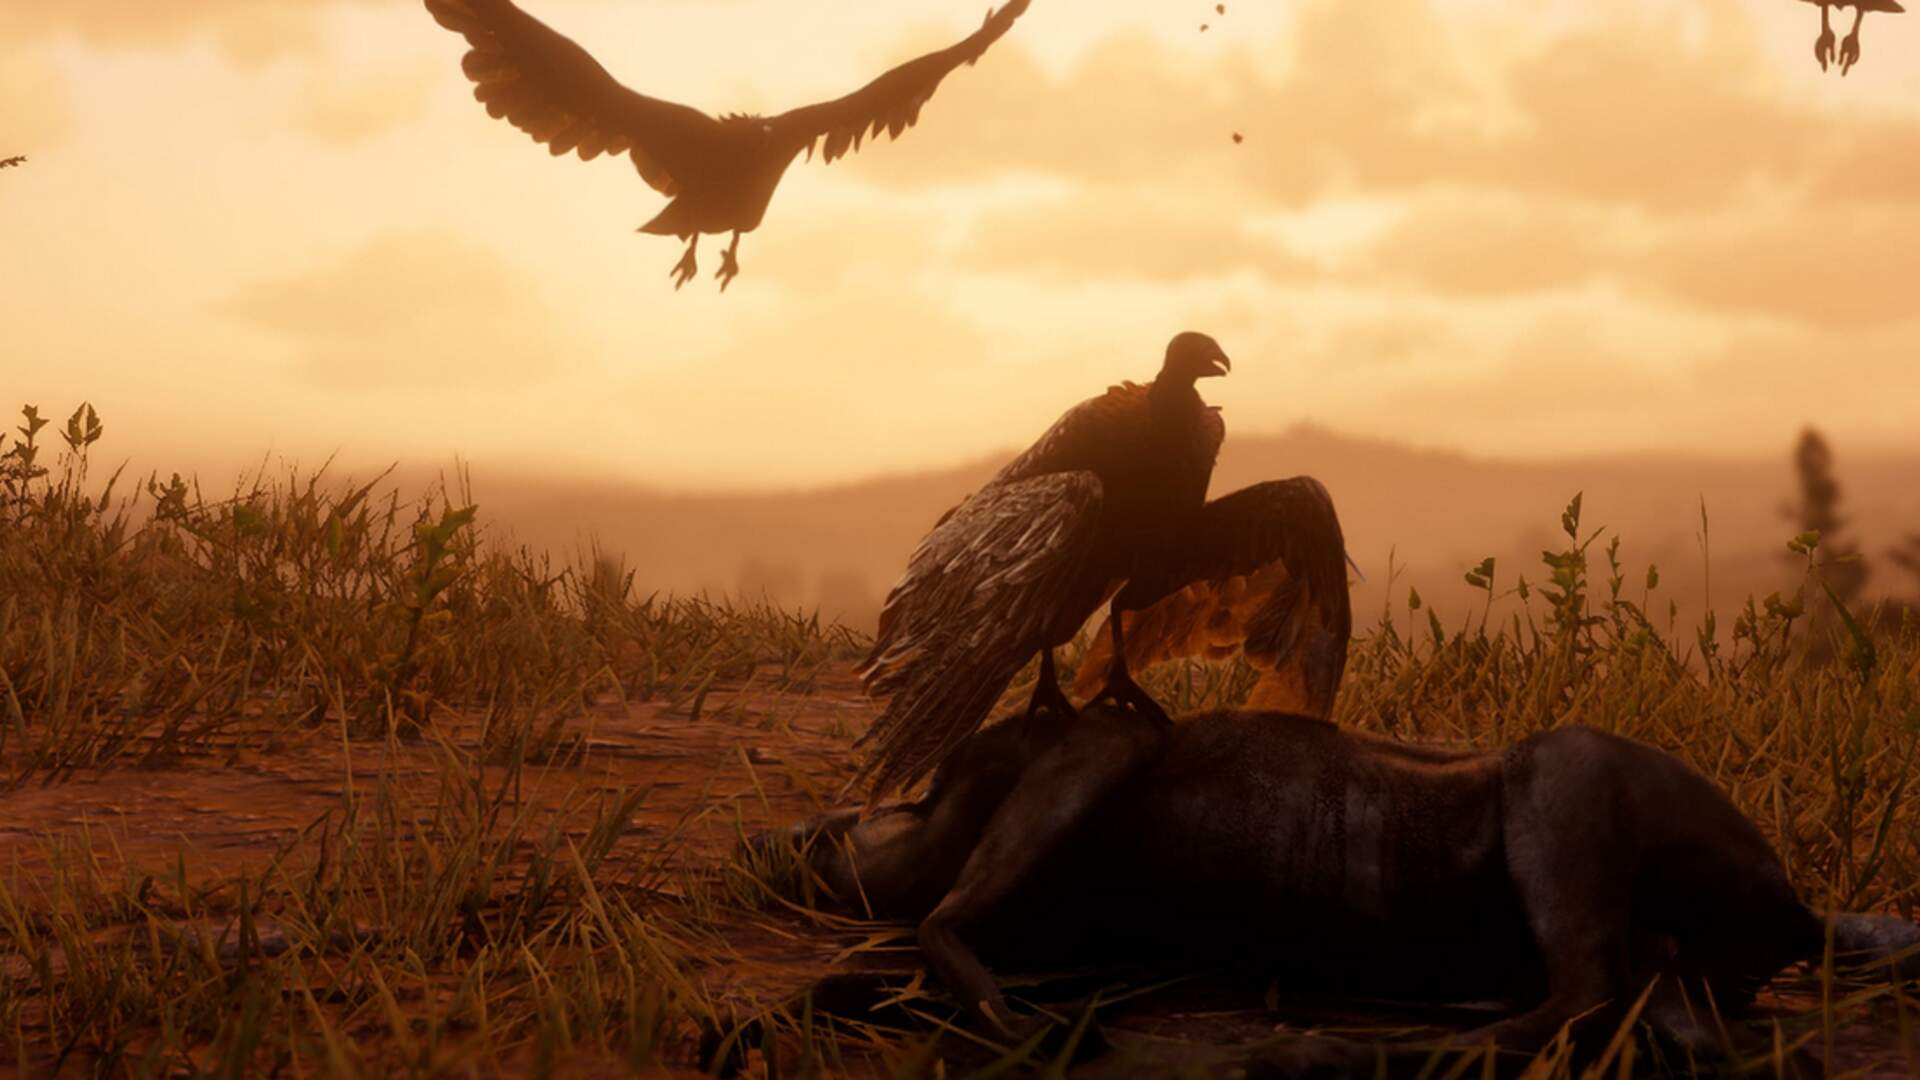 Professional Bird Watcher Gives a Fascinating Review of Red Dead Redemption 2's Wildlife